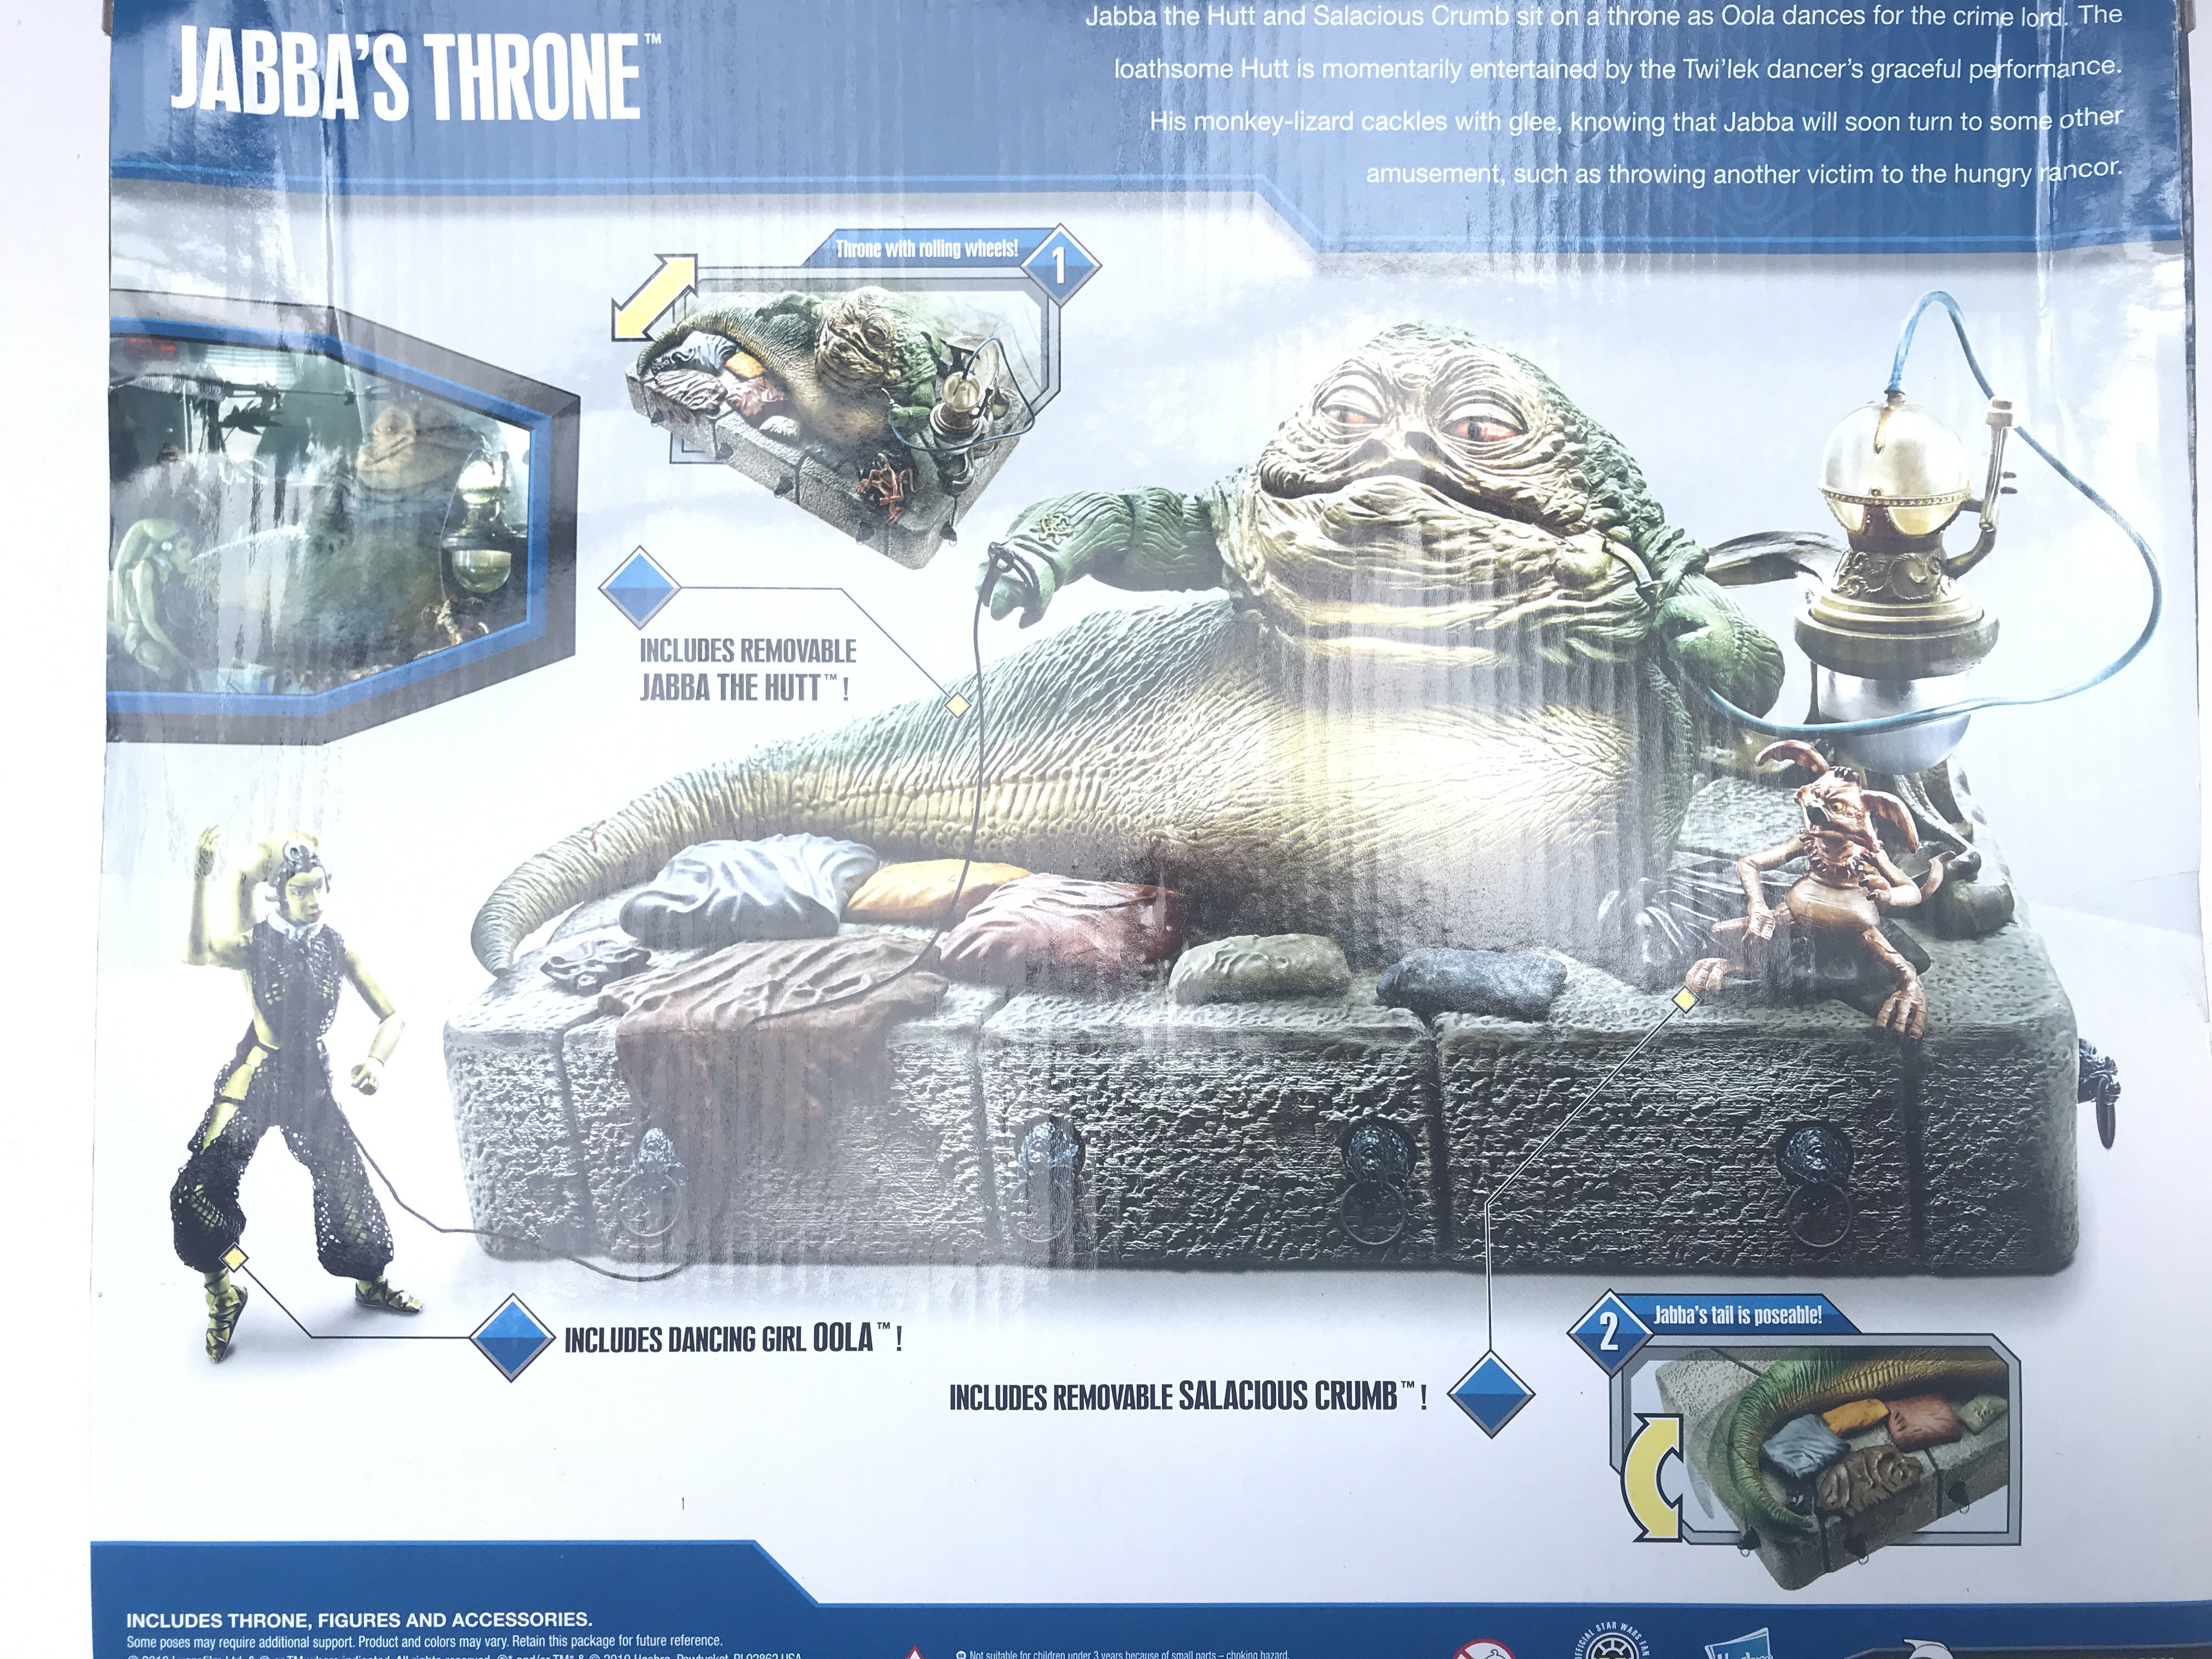 A Boxed Star Wars Jabbas Throne including Dancing - Image 2 of 2